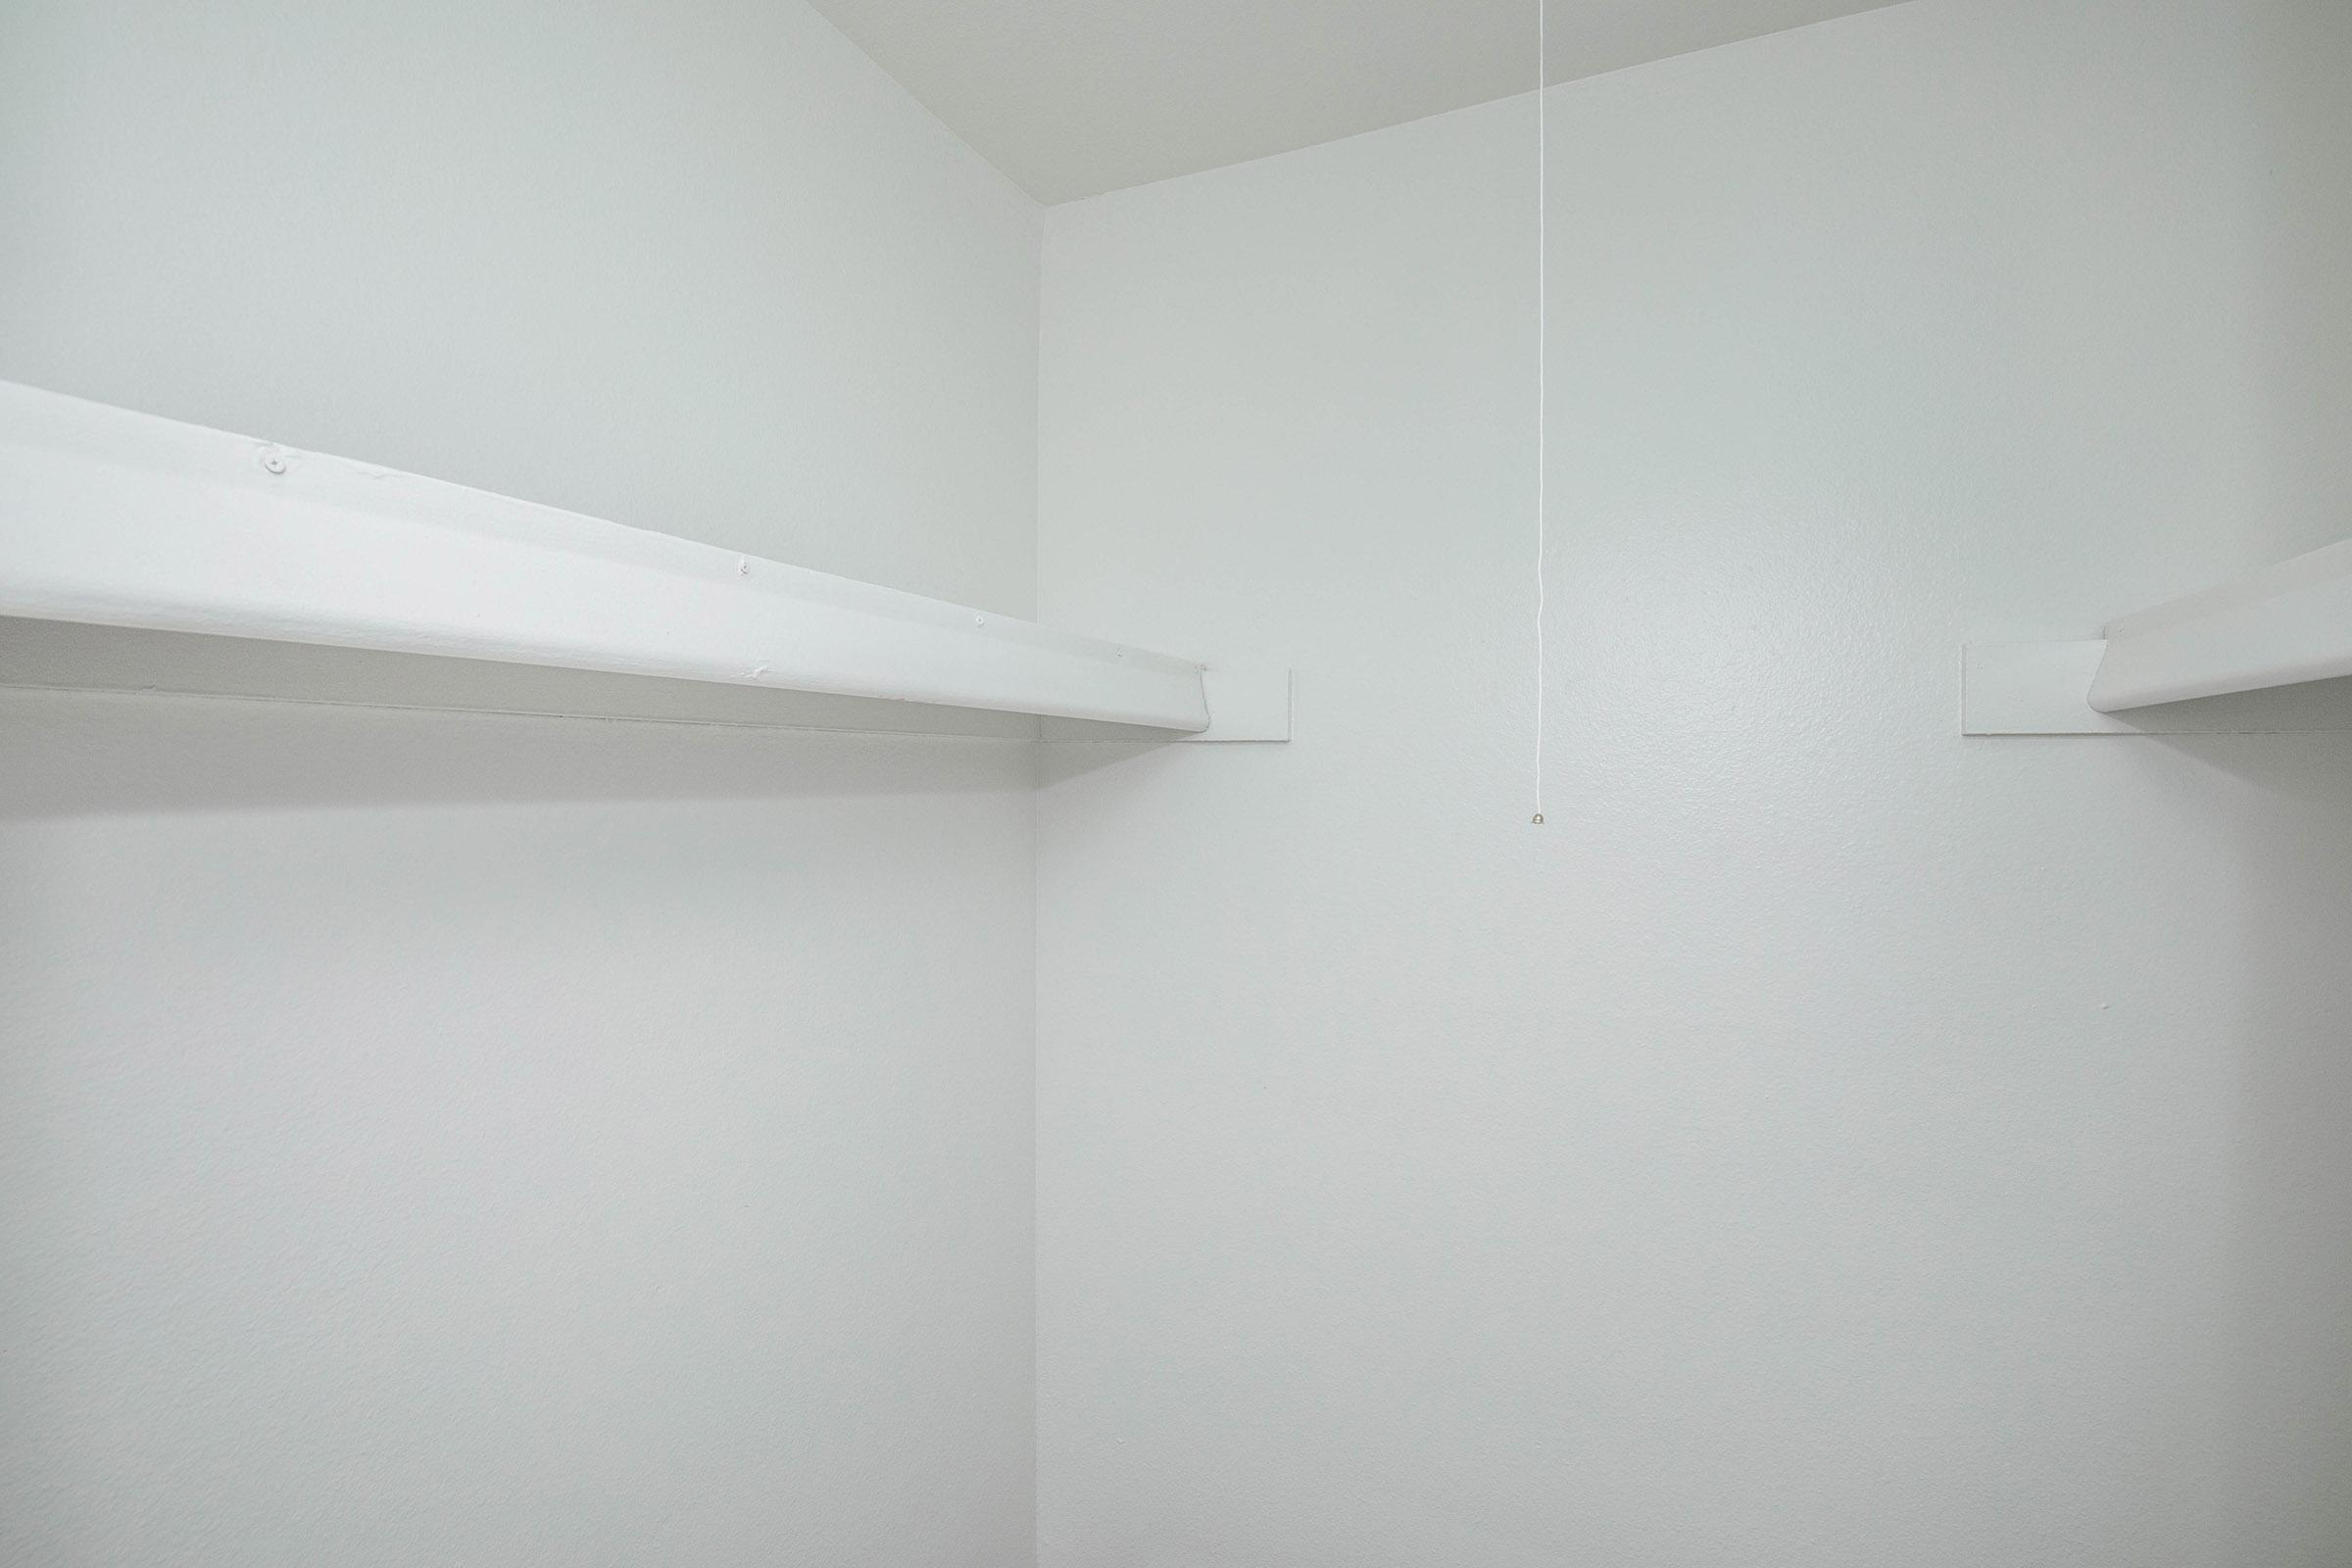 a view of a white wall